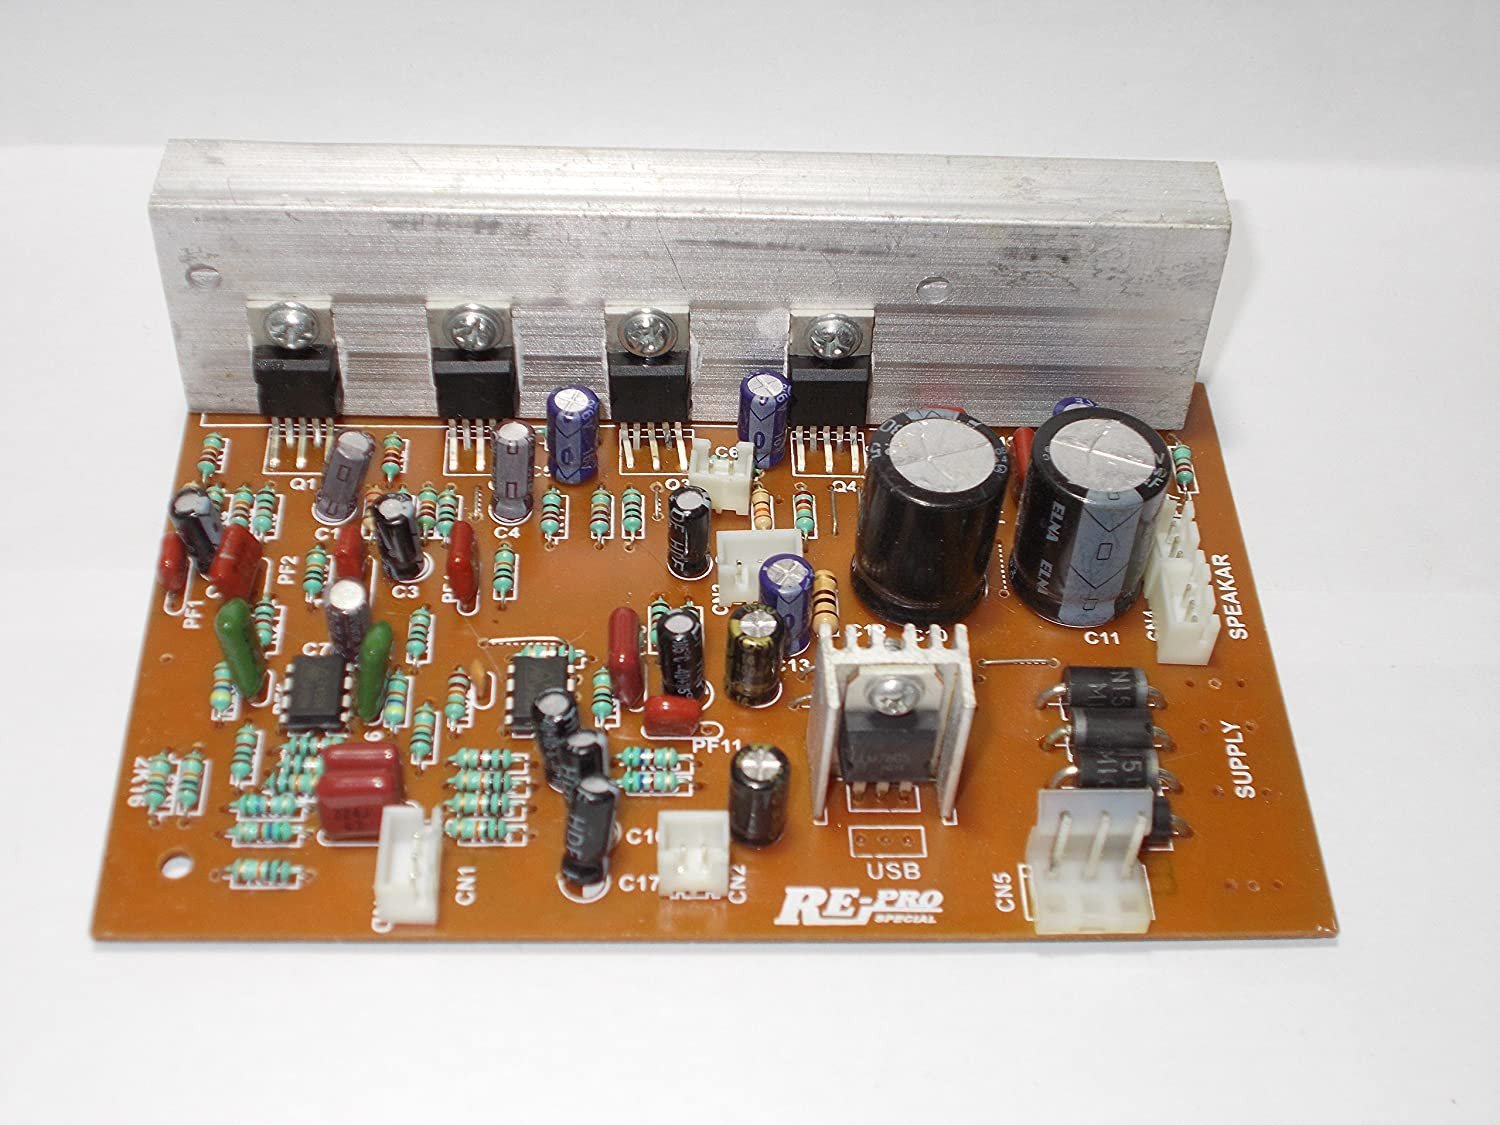 Audio Amplifier Using Ic Lm4780 Circuits T Stk 60w Circuit Kit Board Bass Treble 37 Out Of 5 Stars 9 43500 Soumik Electricals 41 Ch Home Theater